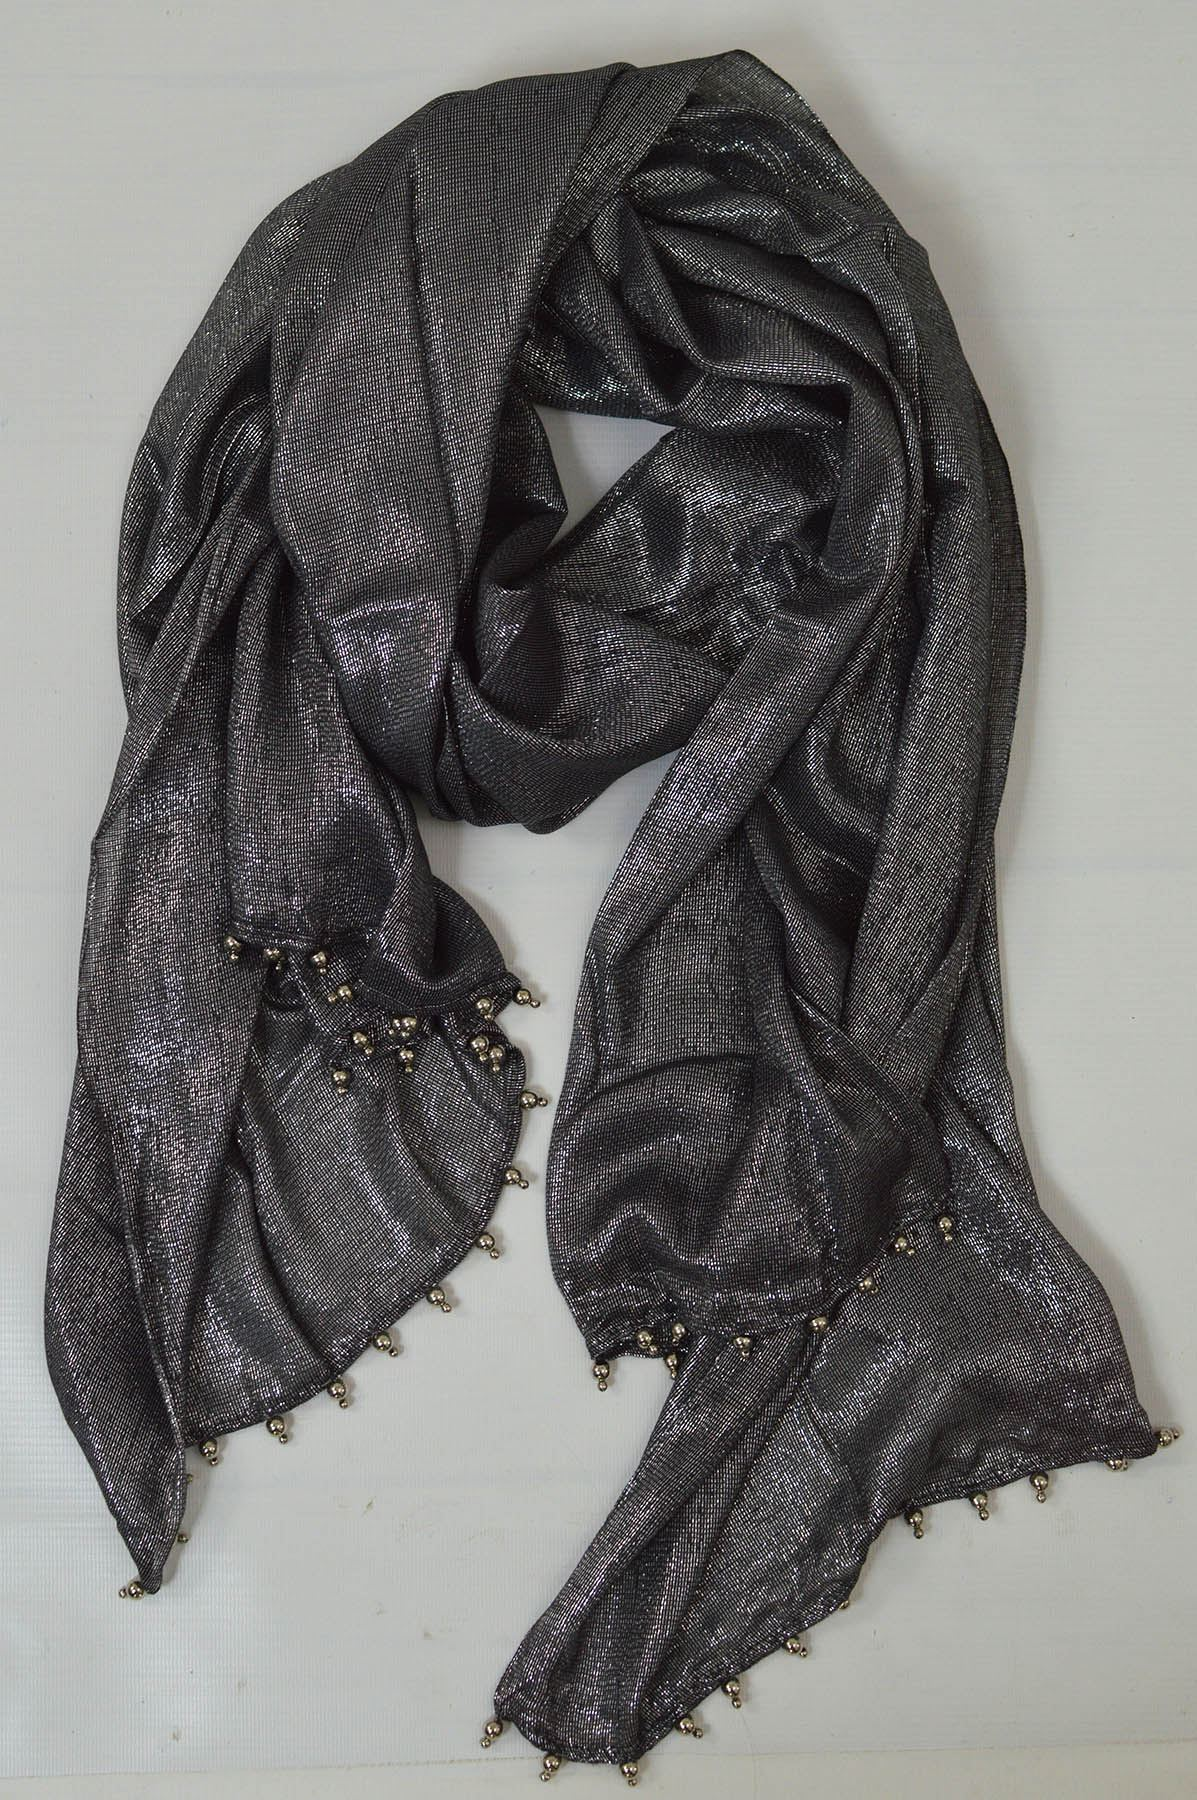 Lightweight Lurex Wrap Beaded Edge Evening Scarf in Gold Silver or Black